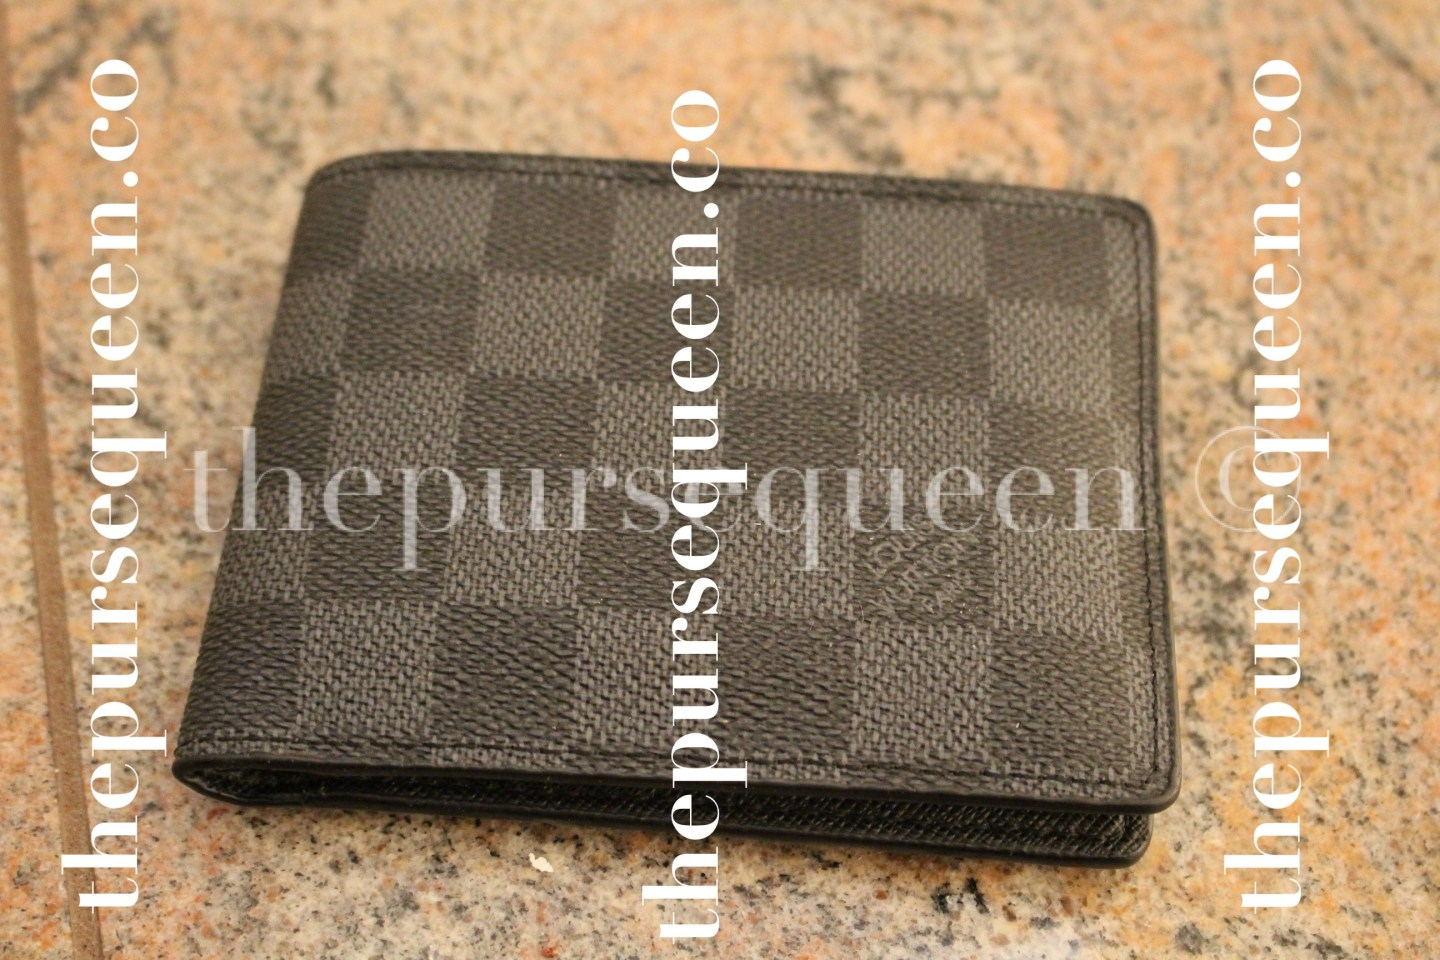 Louis Vuitton Damier Graphite Multiple Replica Wallet Front View